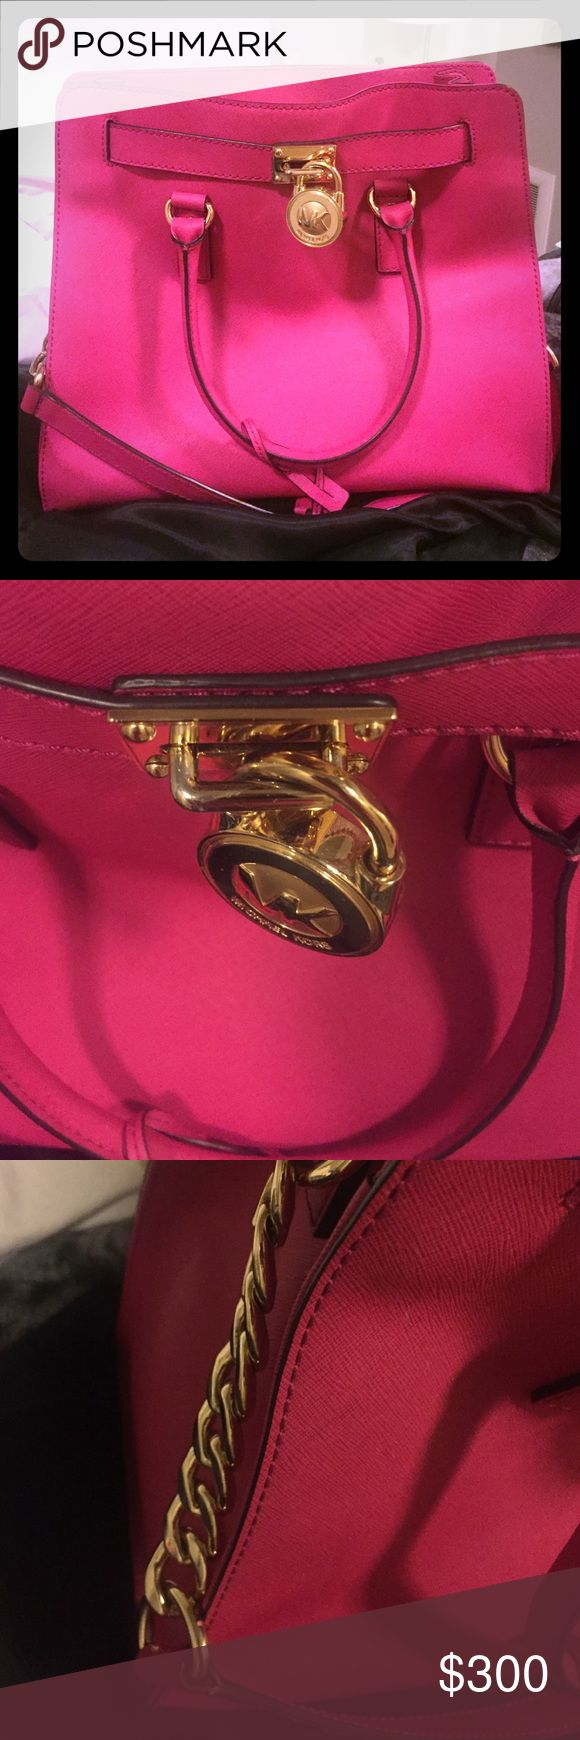 Michael kors pink shoulder bag Great condition shoulder bag. Michael Kors Bags Shoulder Bags